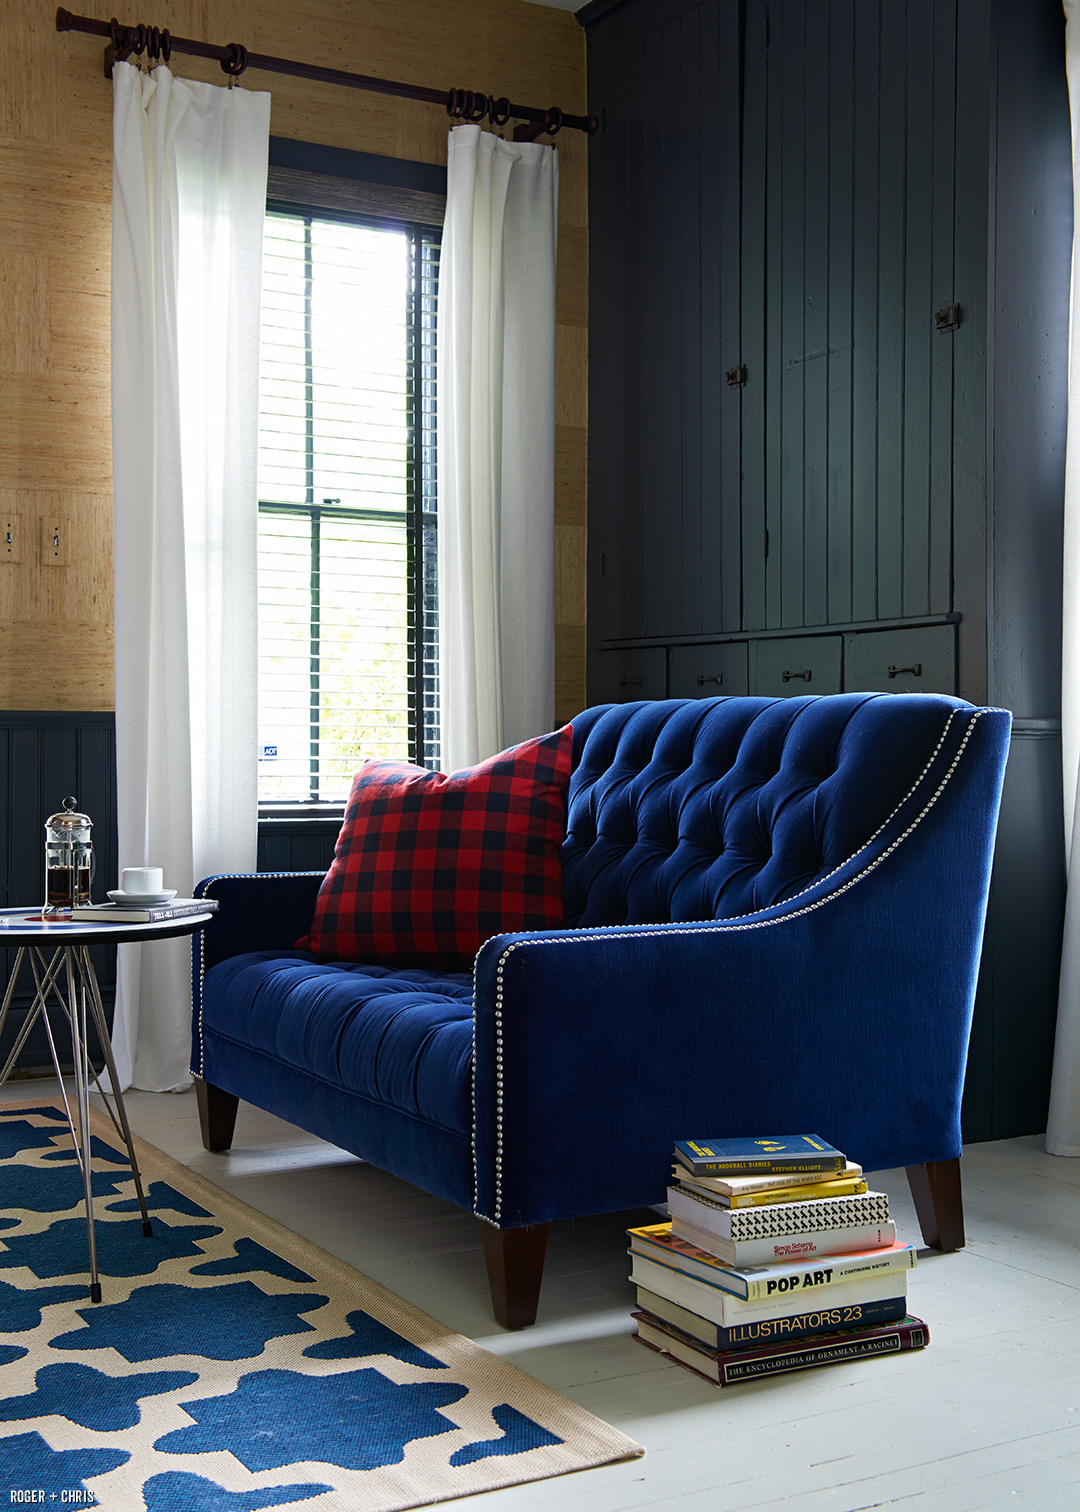 Our tufted Lincoln love seat in blue velvet. Photo by Alec Hemer.